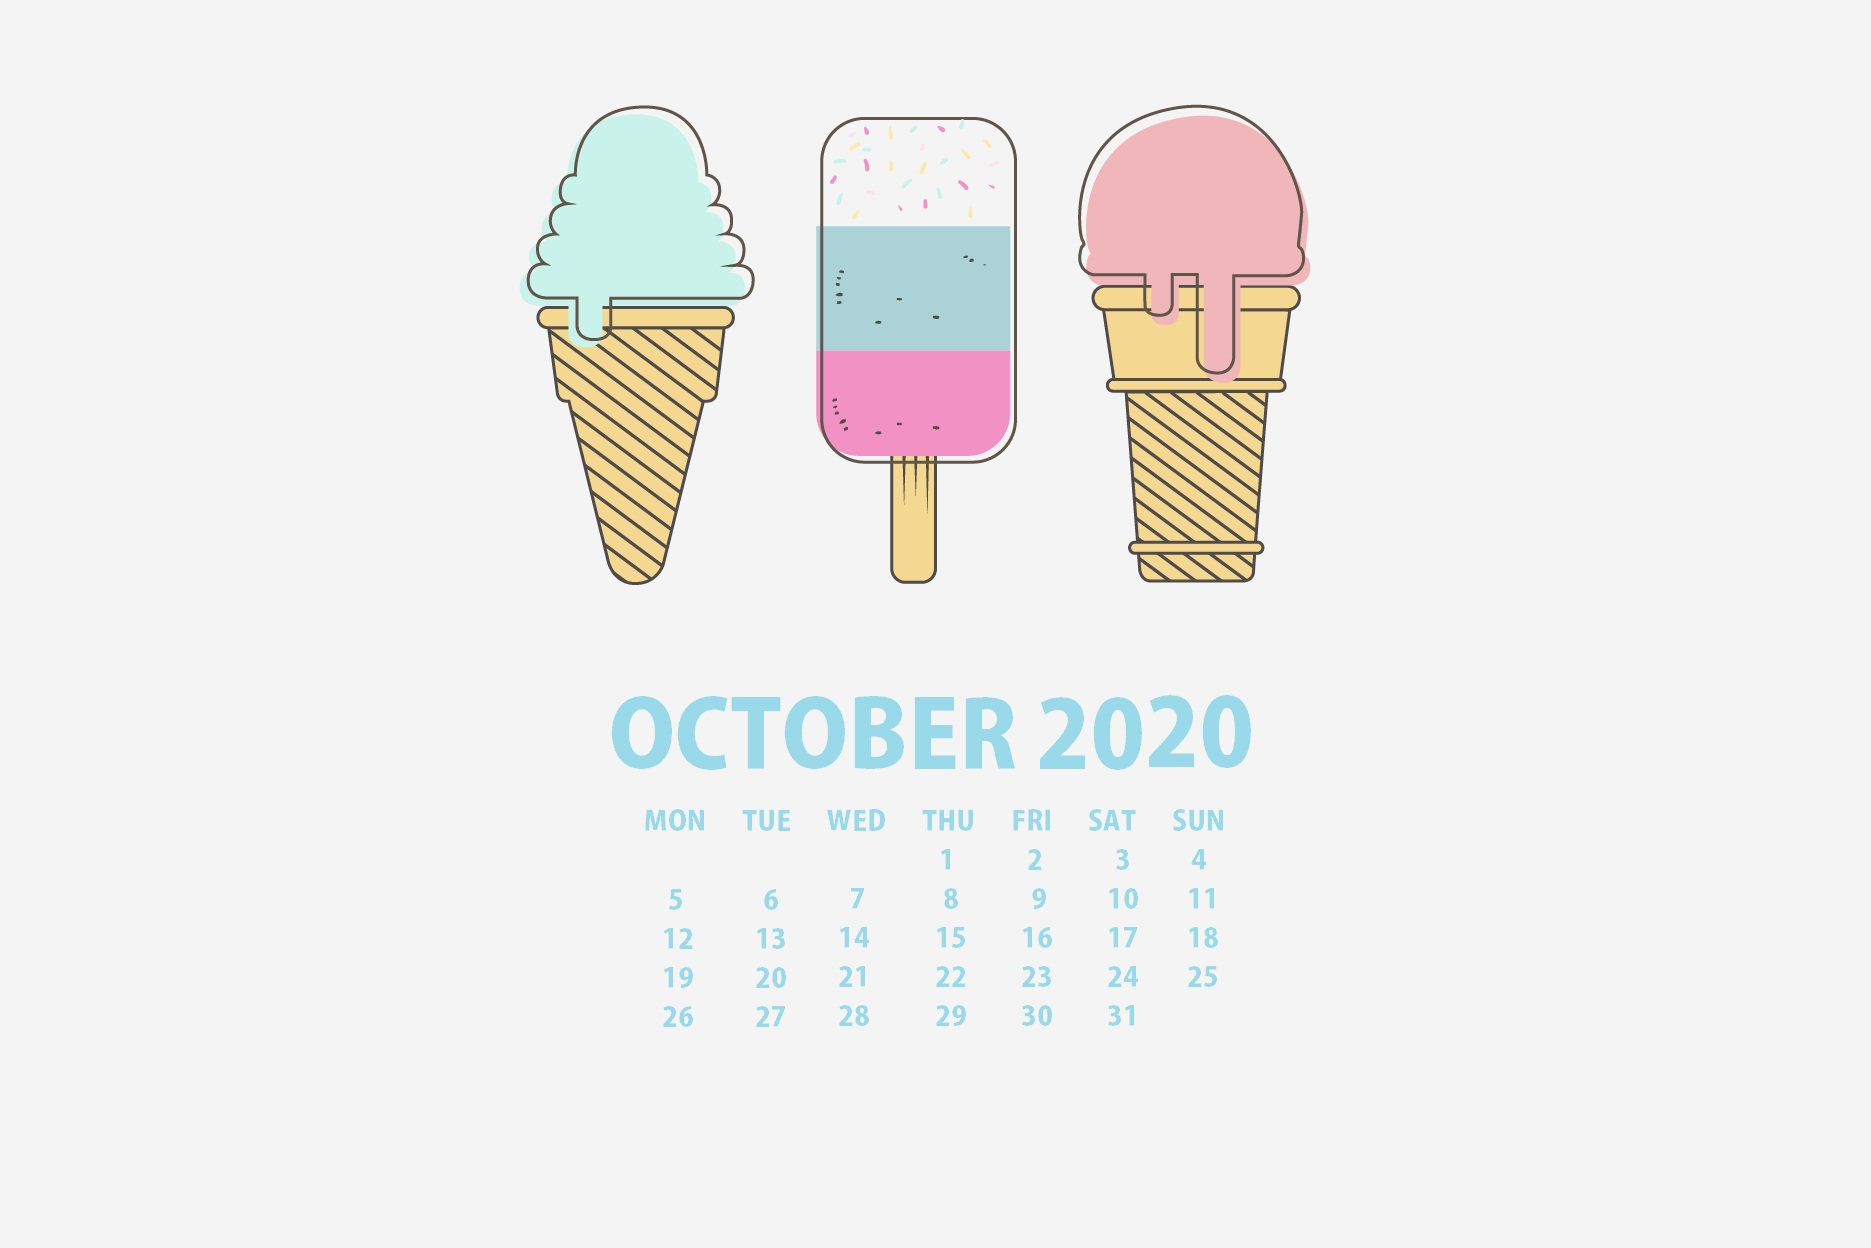 october wallpaper for desktop